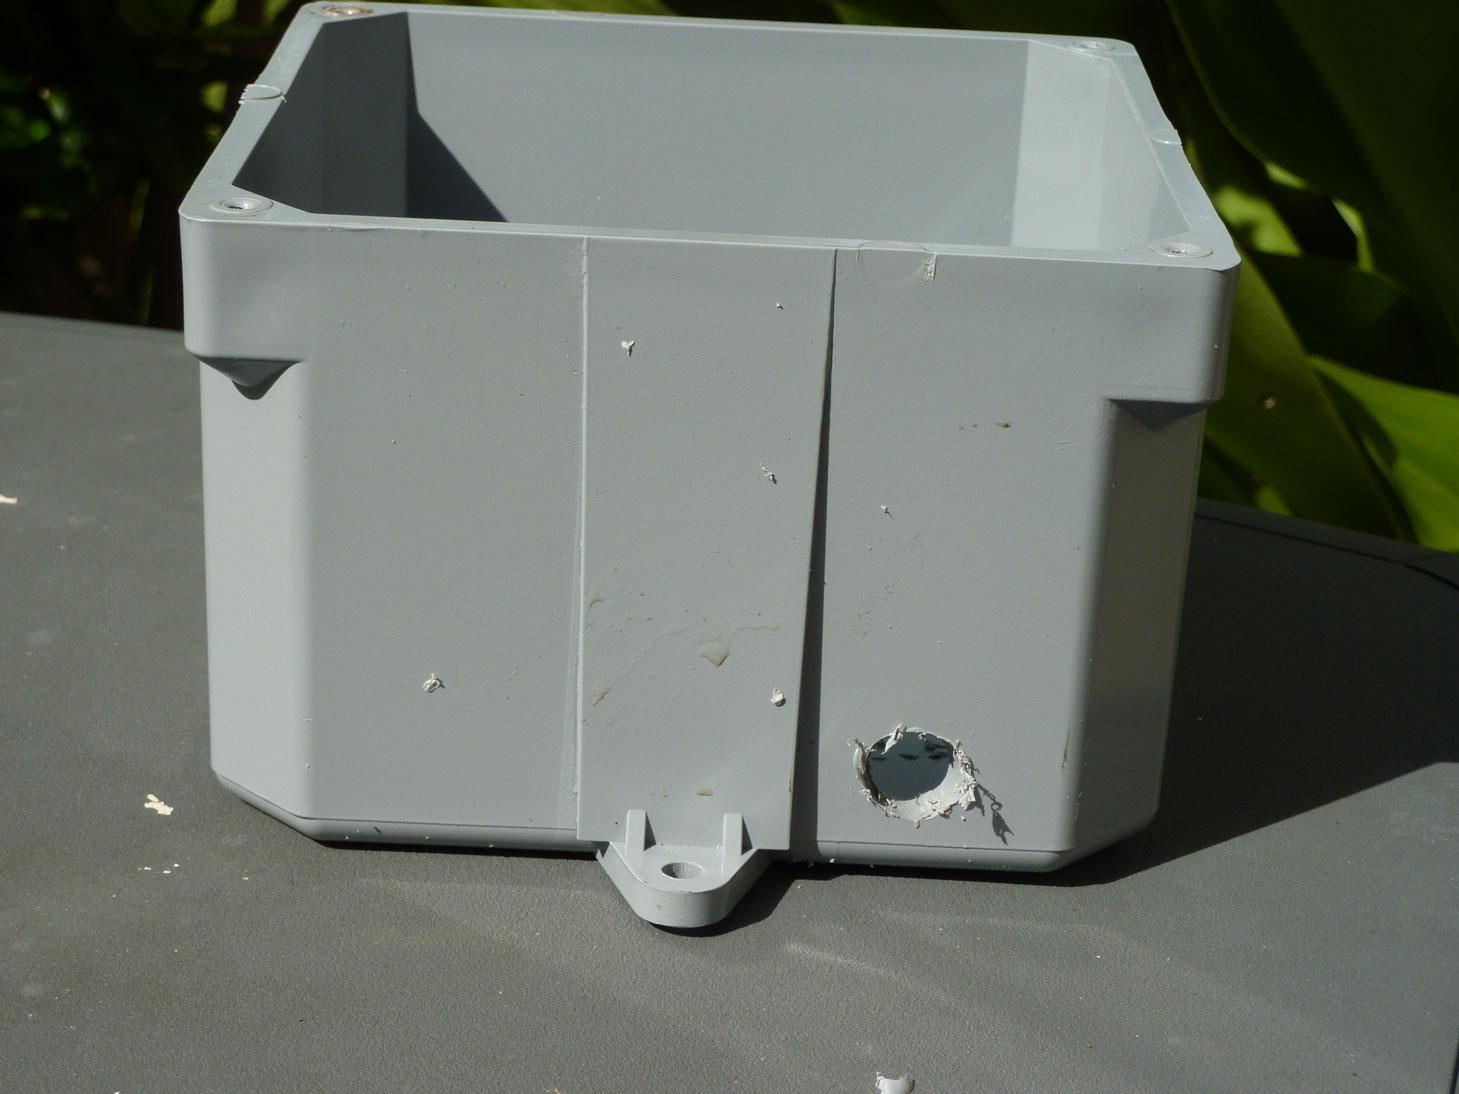 drilled hole in the outdoor dog fence water proof box